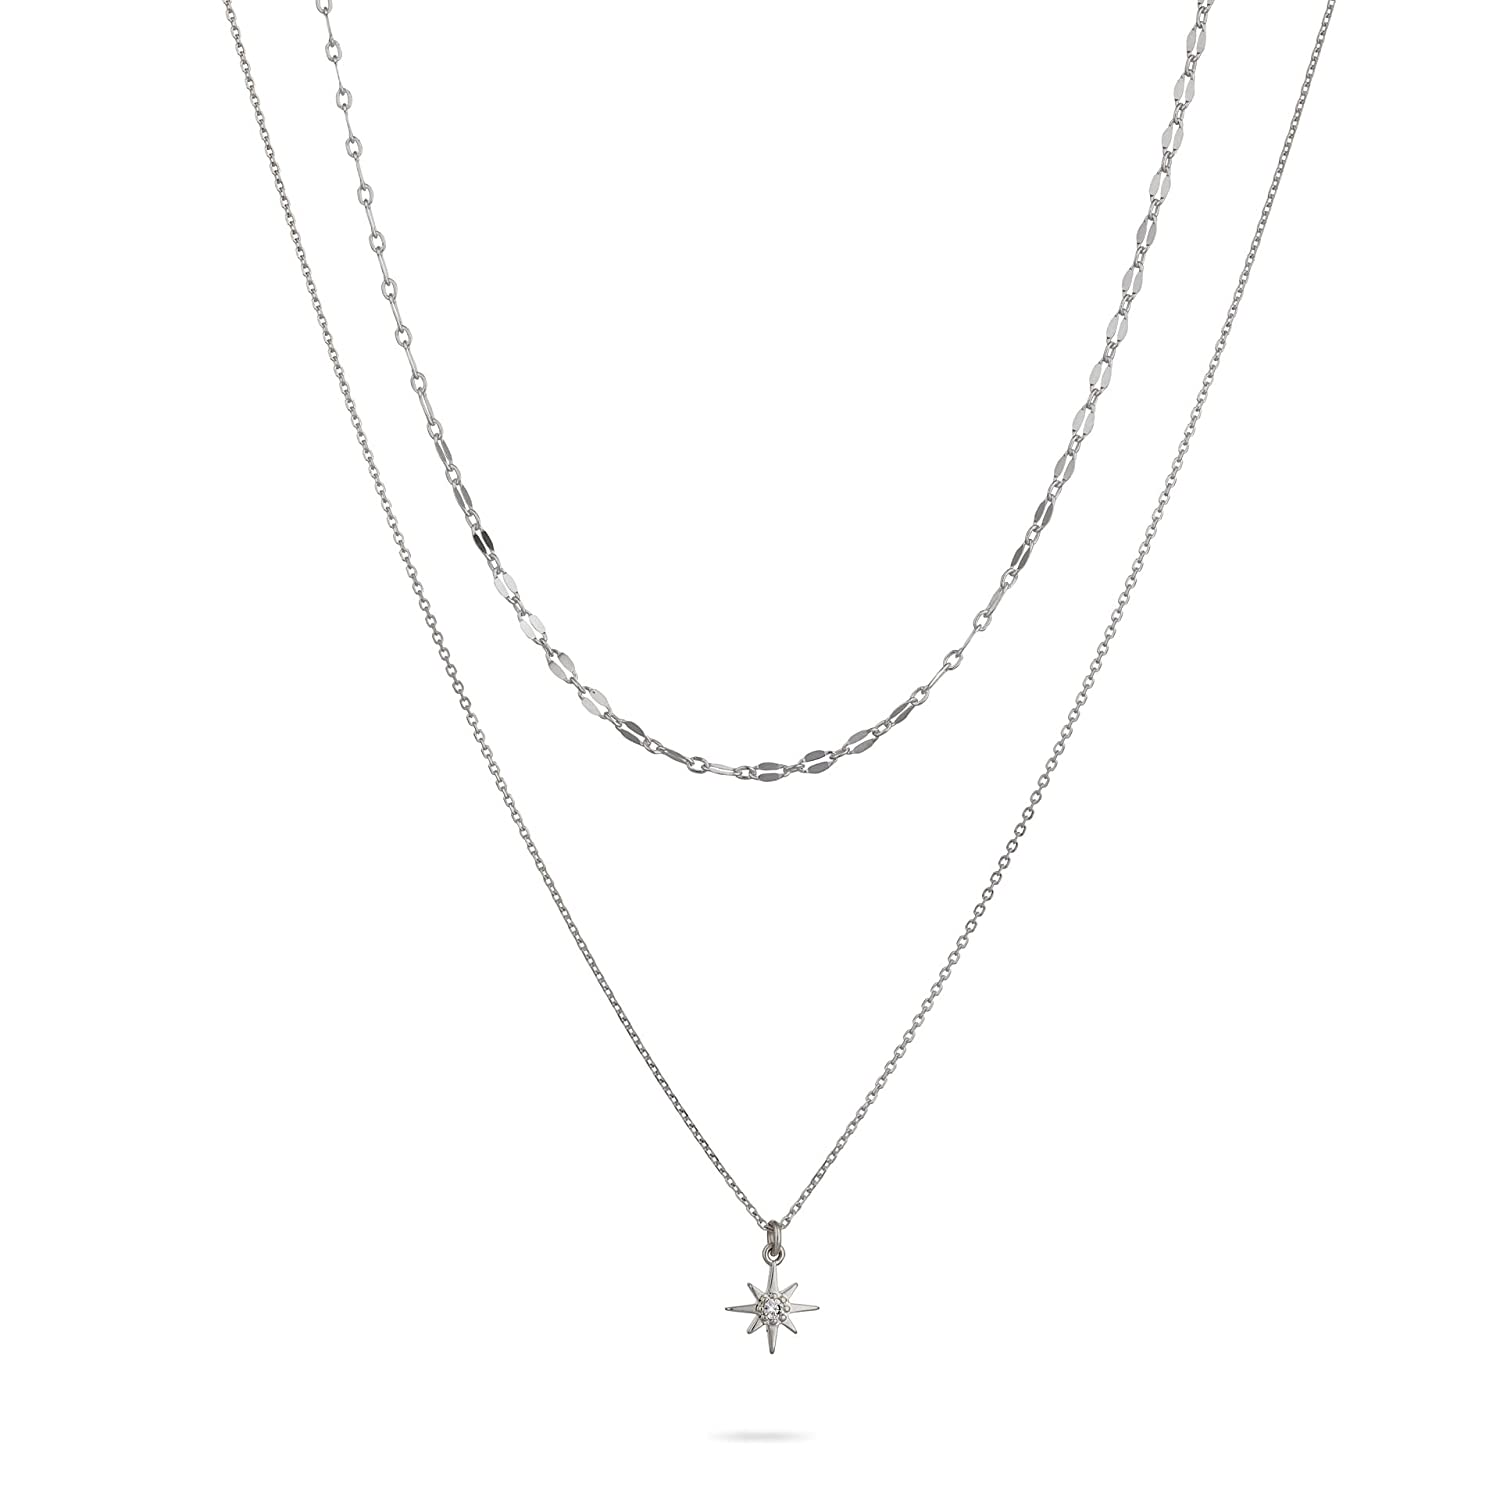 Annikabella Set Of 2 Silver including Max 52% Choice OFF For Necklaces Choker Women